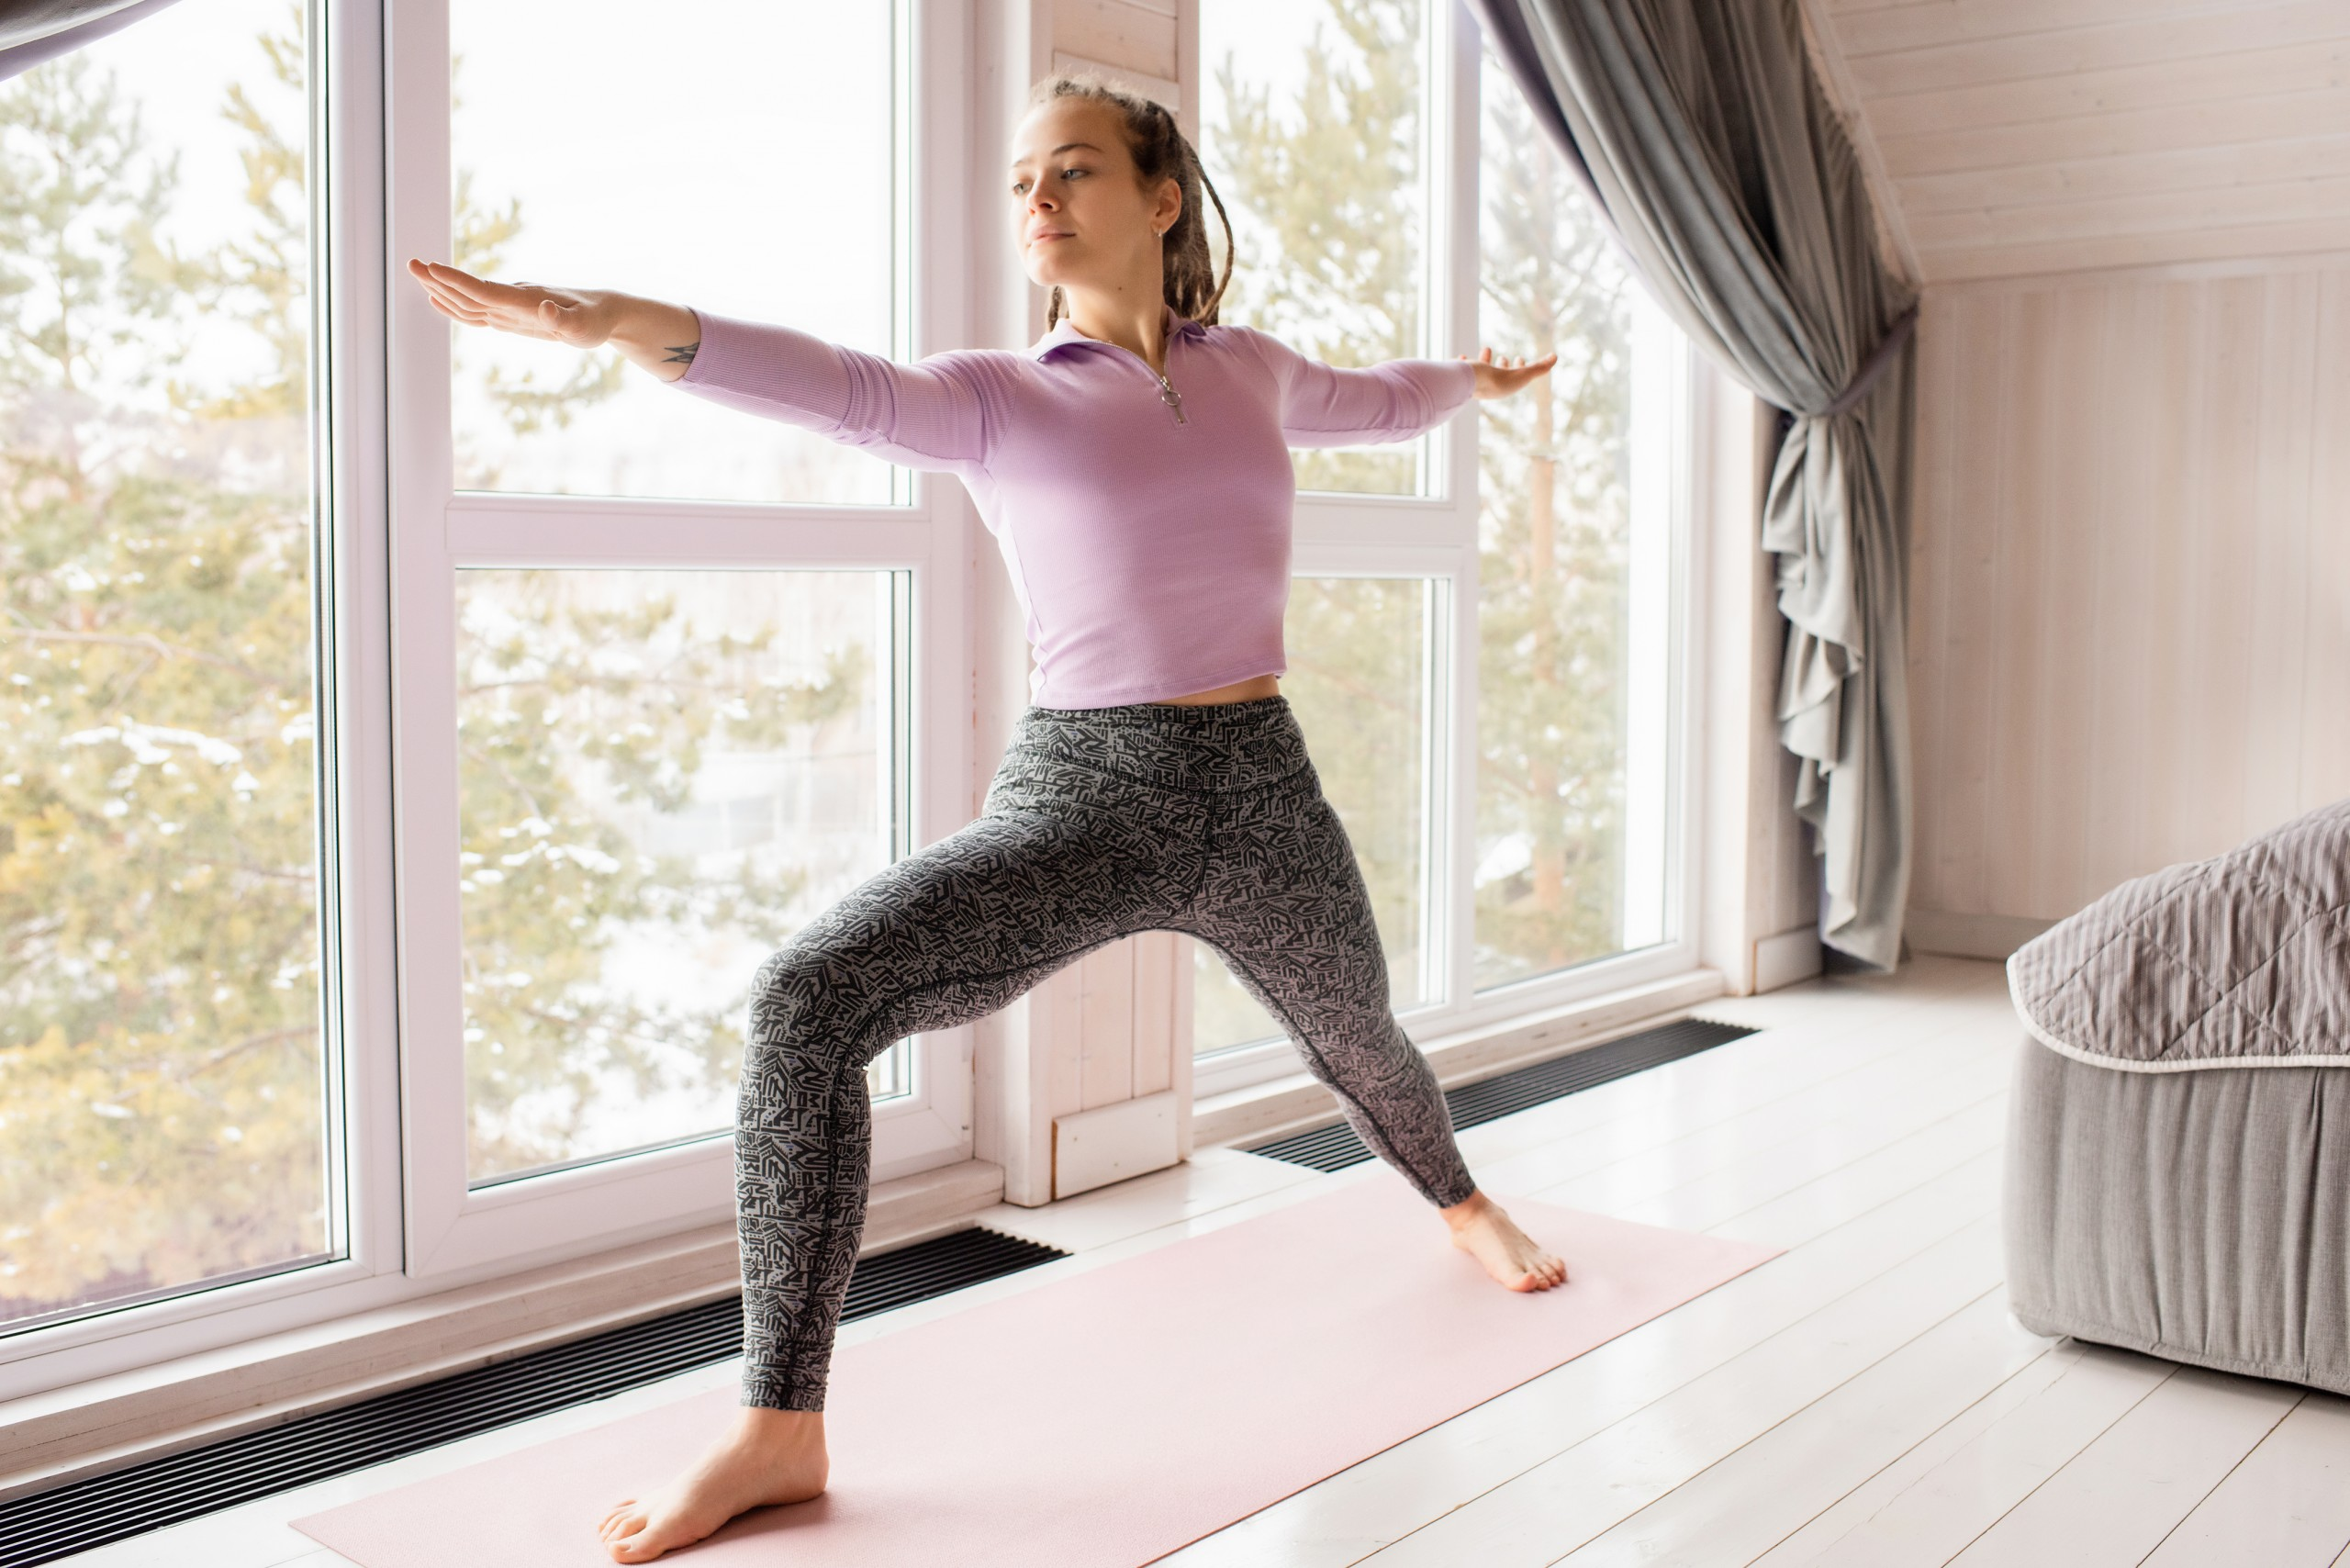 Woman doing Yoga Pose in Home